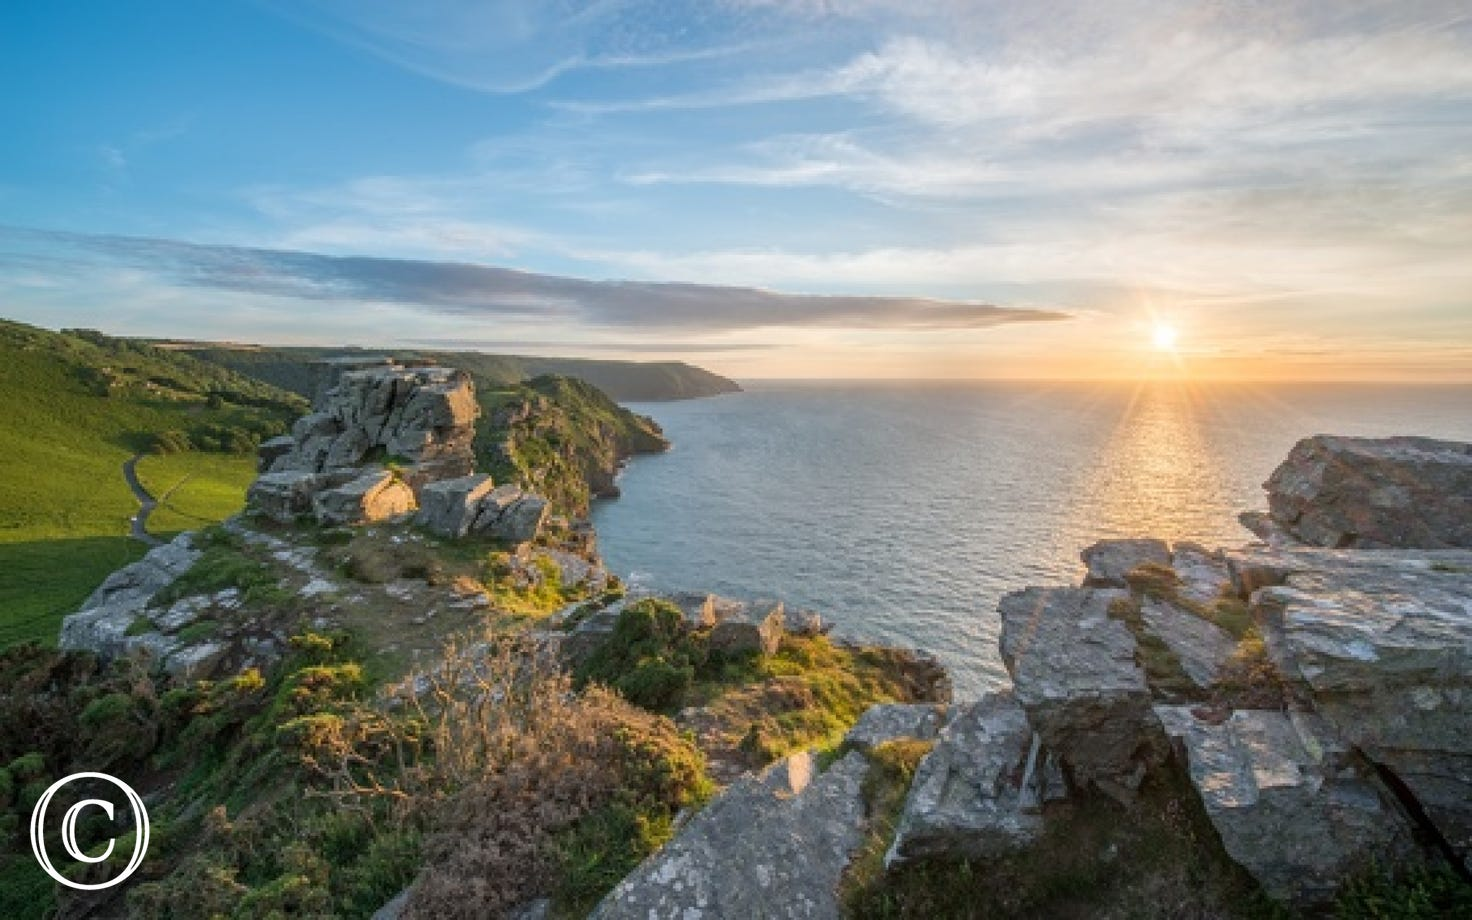 Enjoy a beautiful sunset walk at Valley of the Rocks which is a short distance away